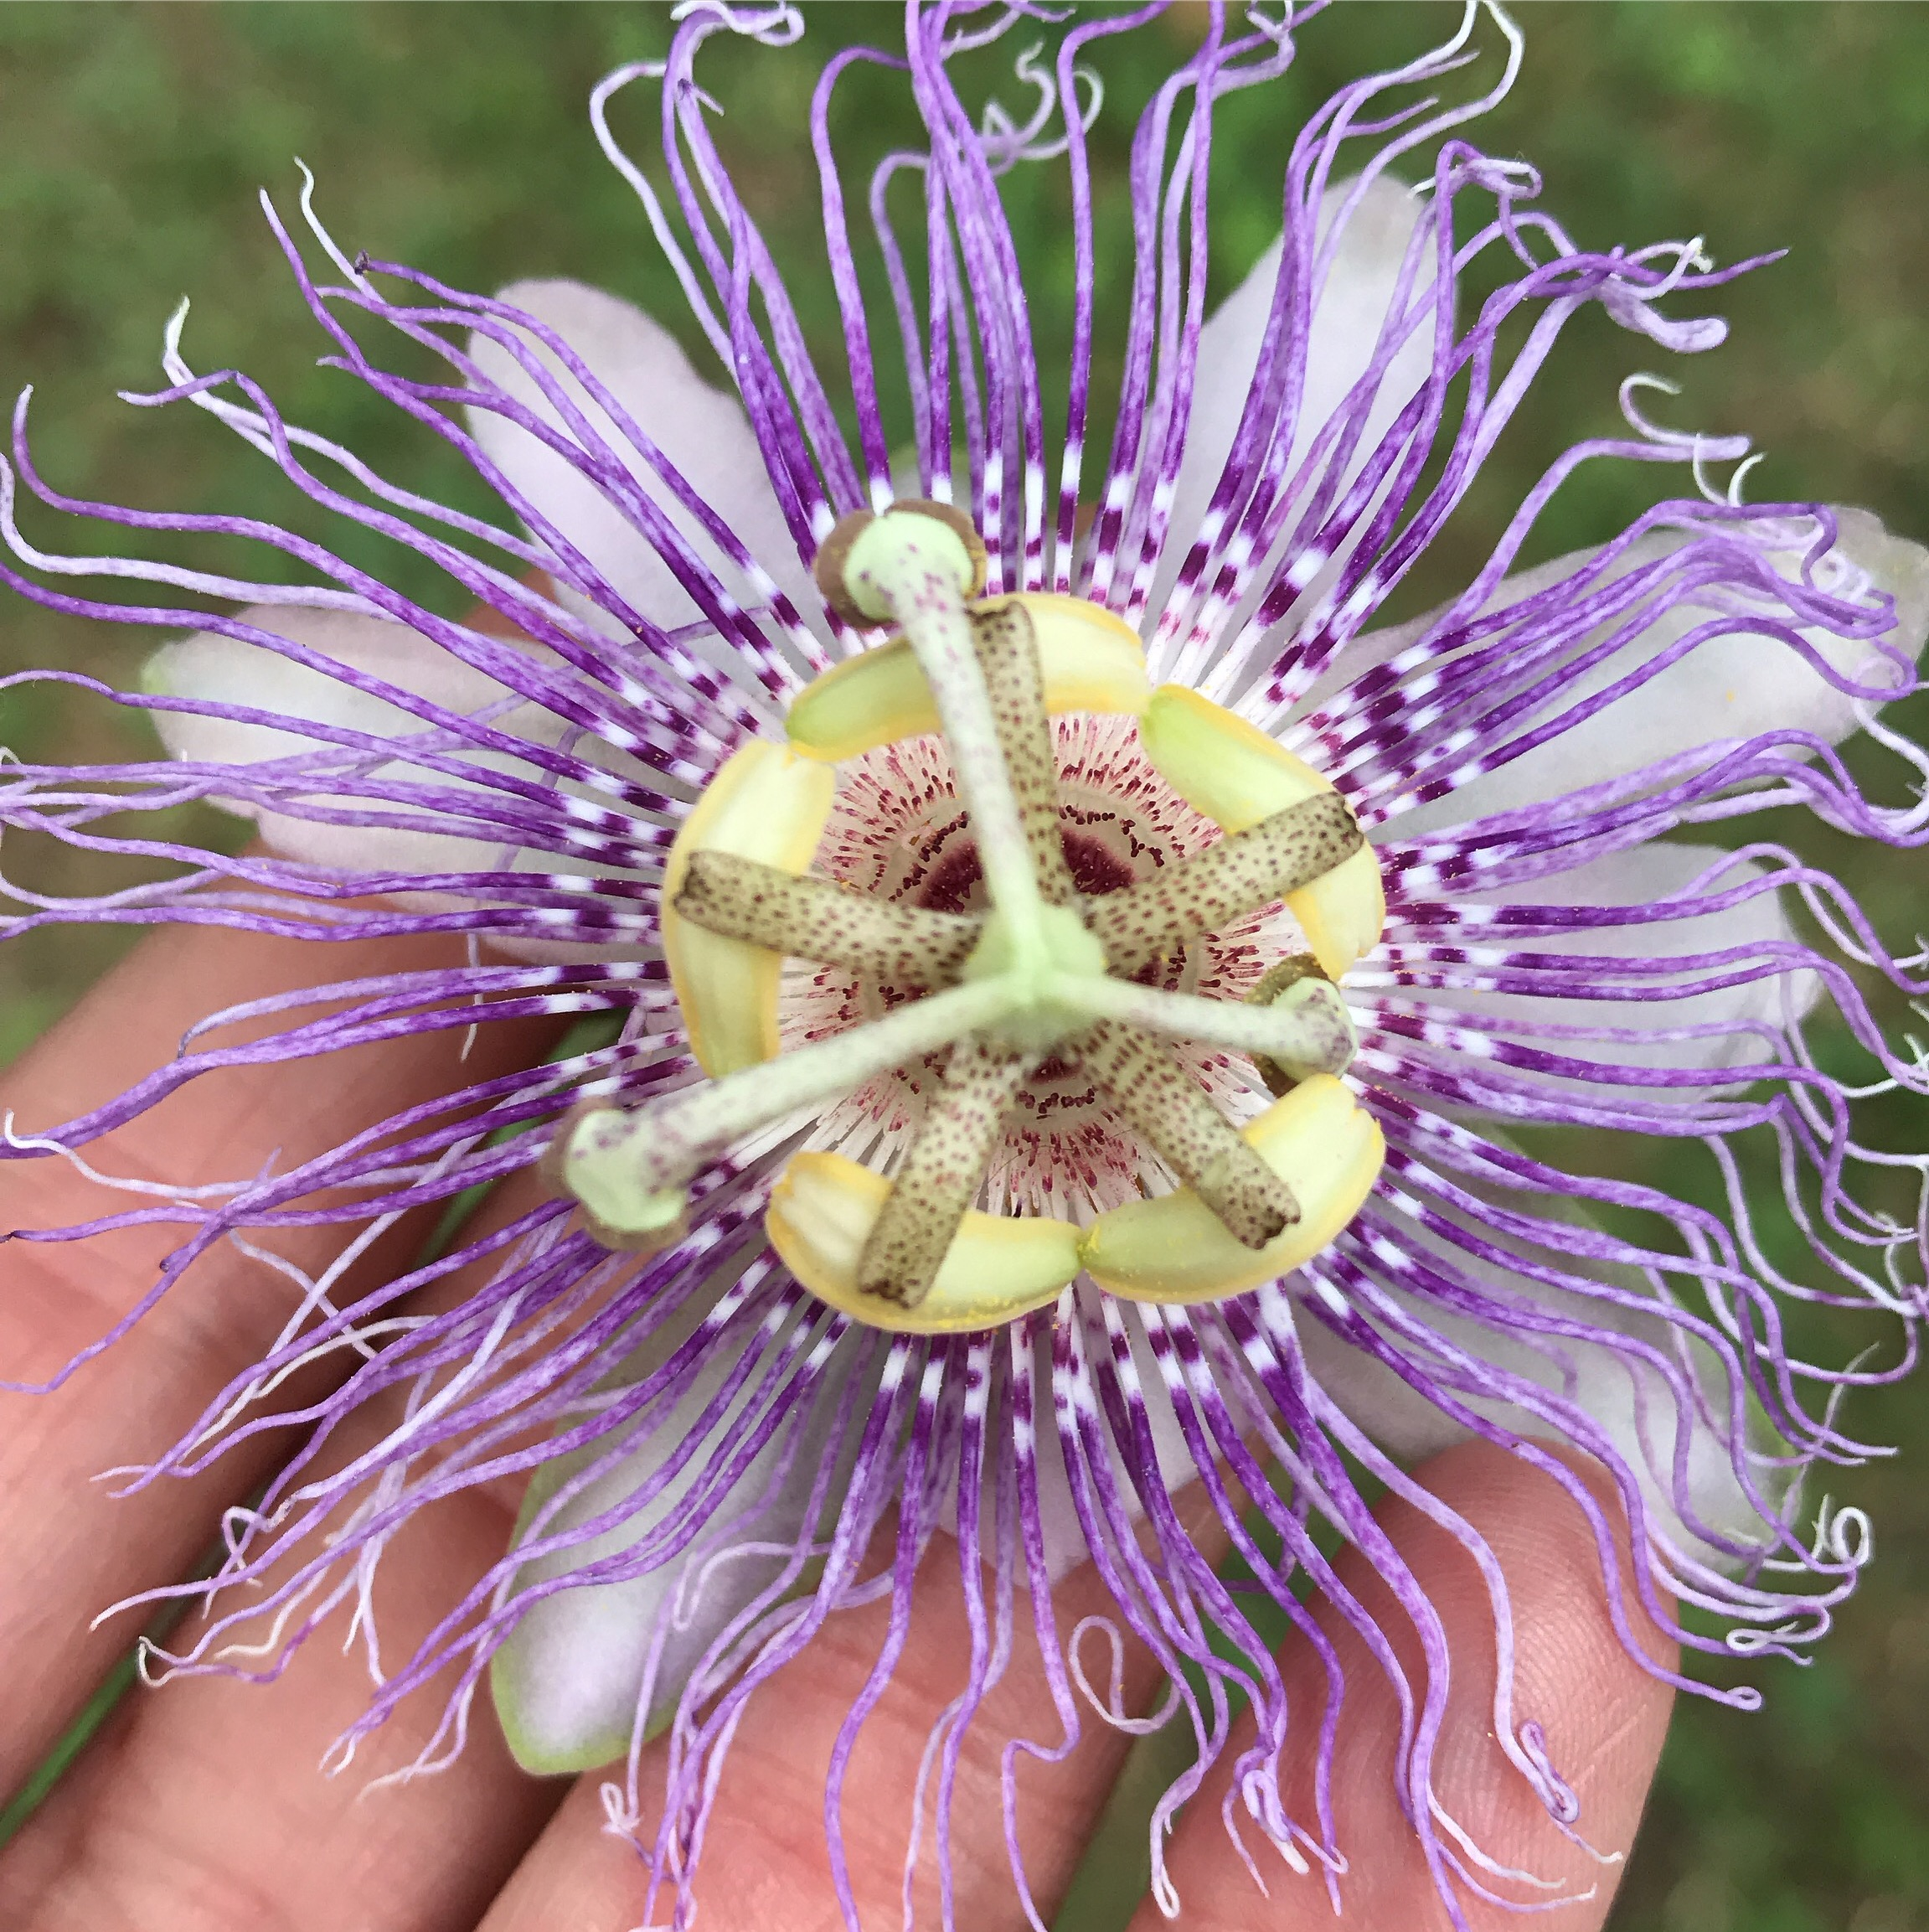 The strange and delicate beauty of the Passiflora incarnata (Passionflower).